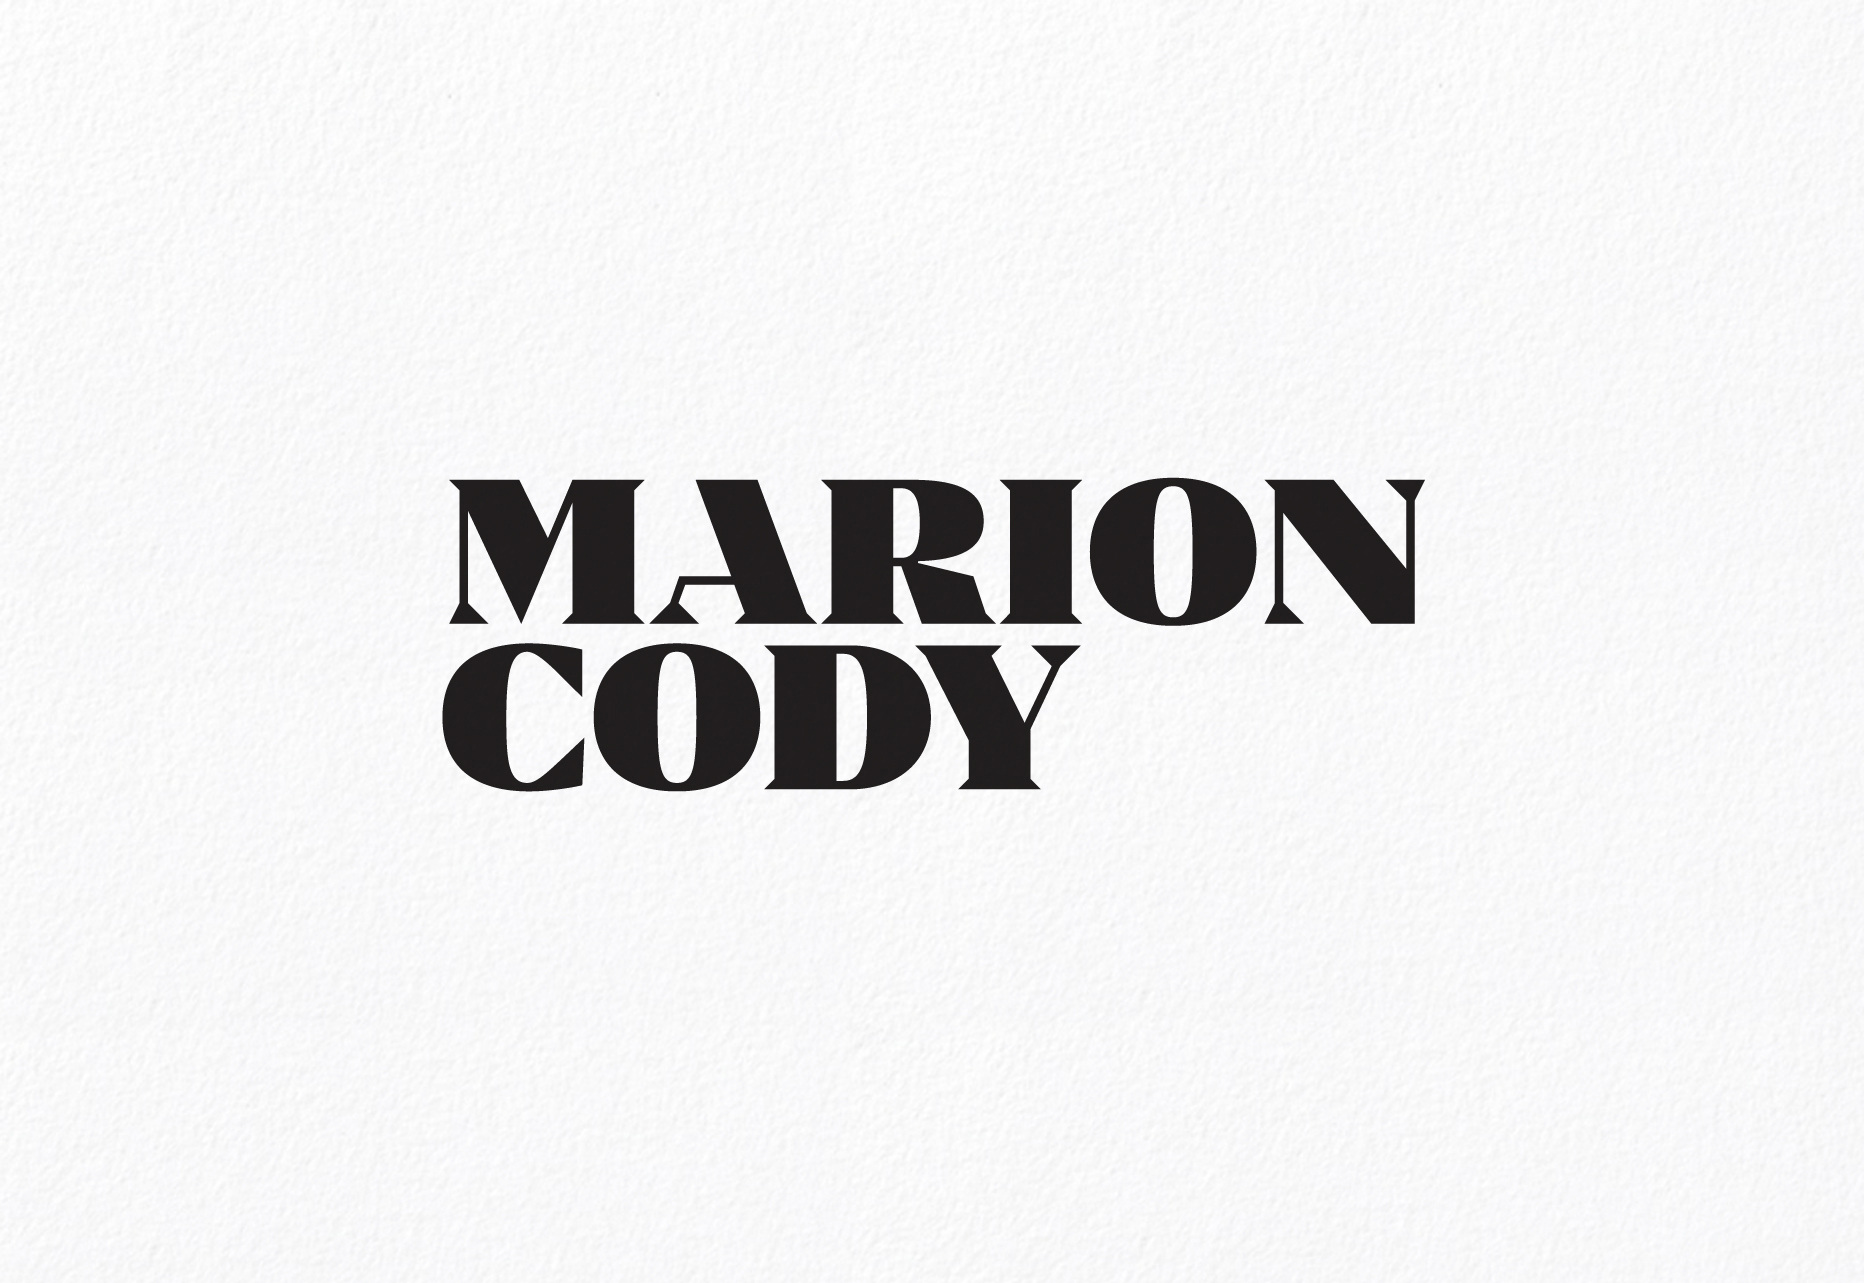 Cover image: Marion Cody Identity (2015)